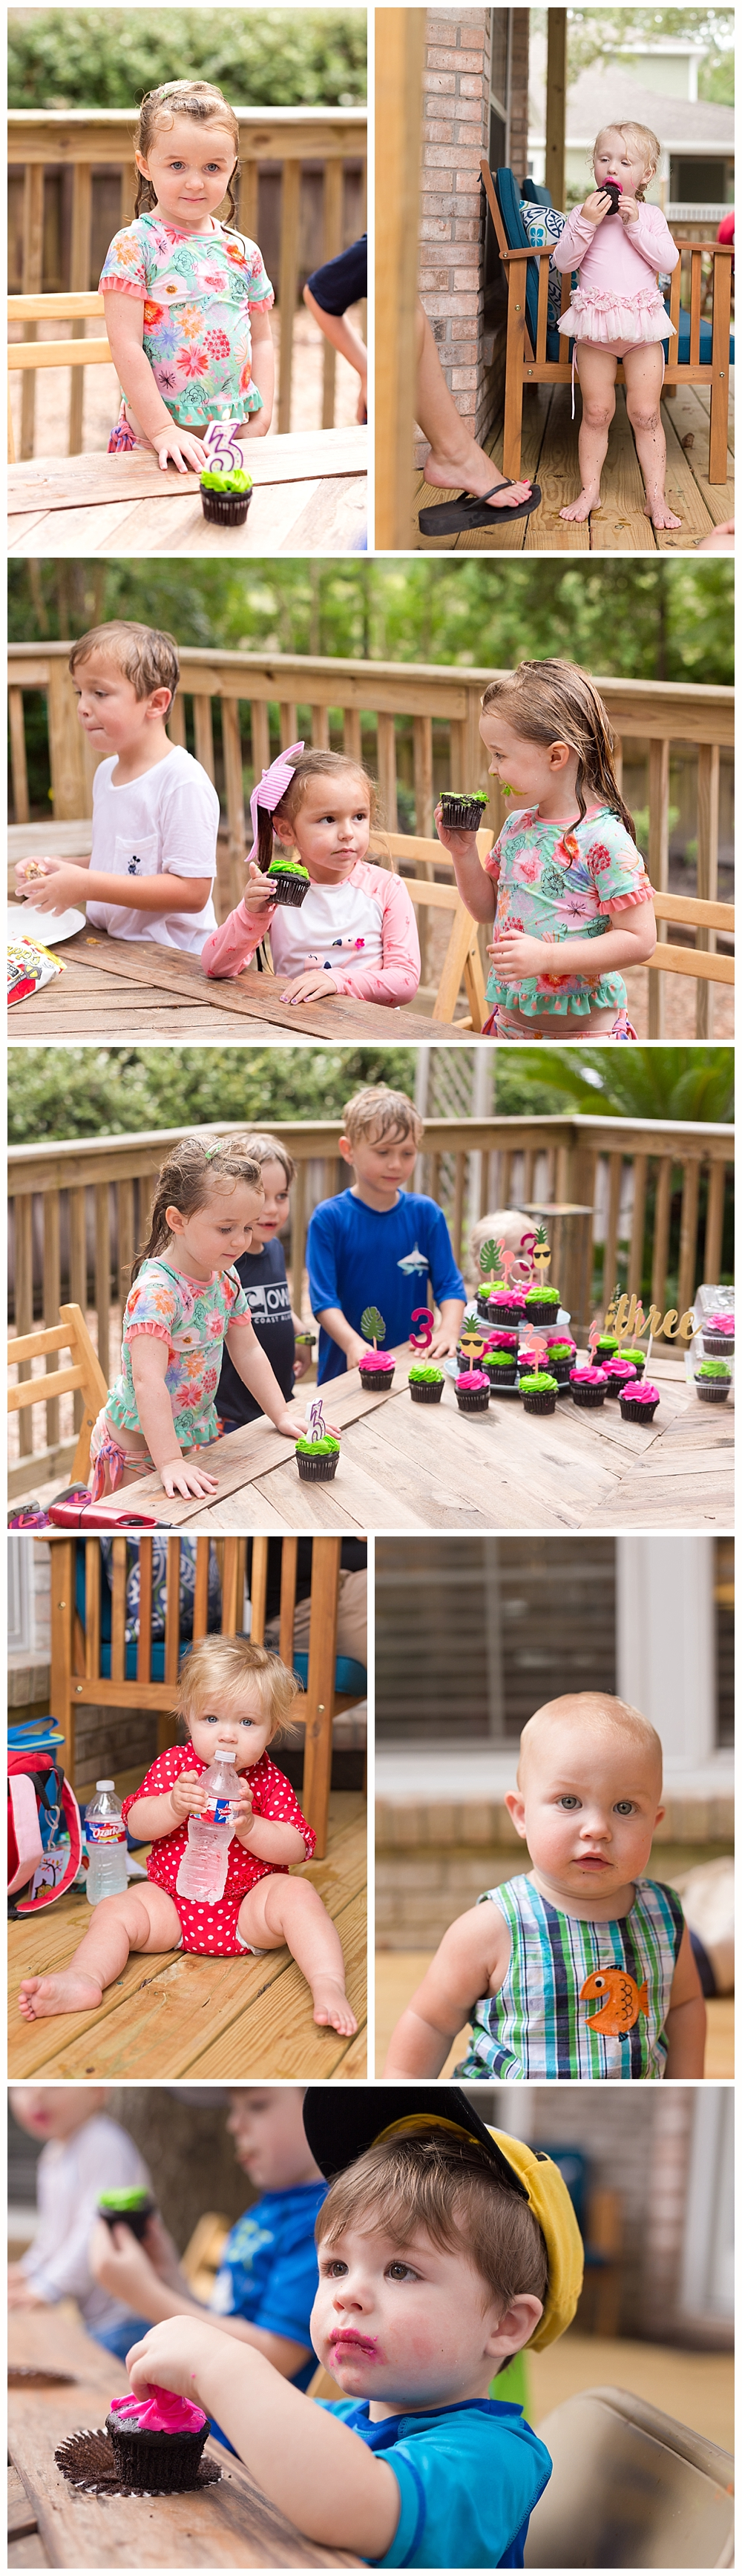 kid party guests eating chocolate cupcakes on back deck